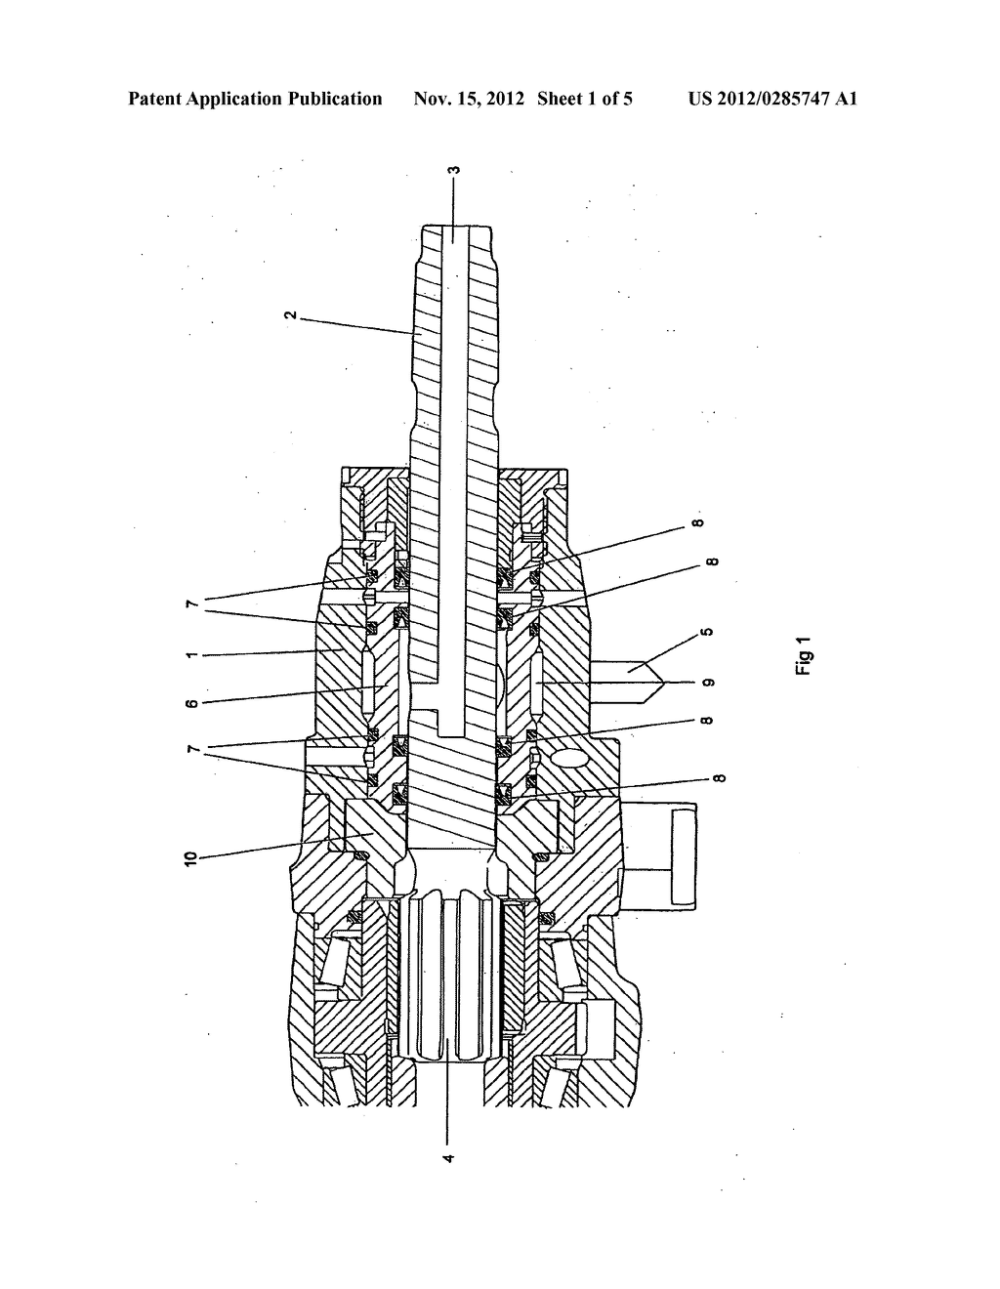 medium resolution of percussion rock drilling machine and drill rig diagram schematic and image 02